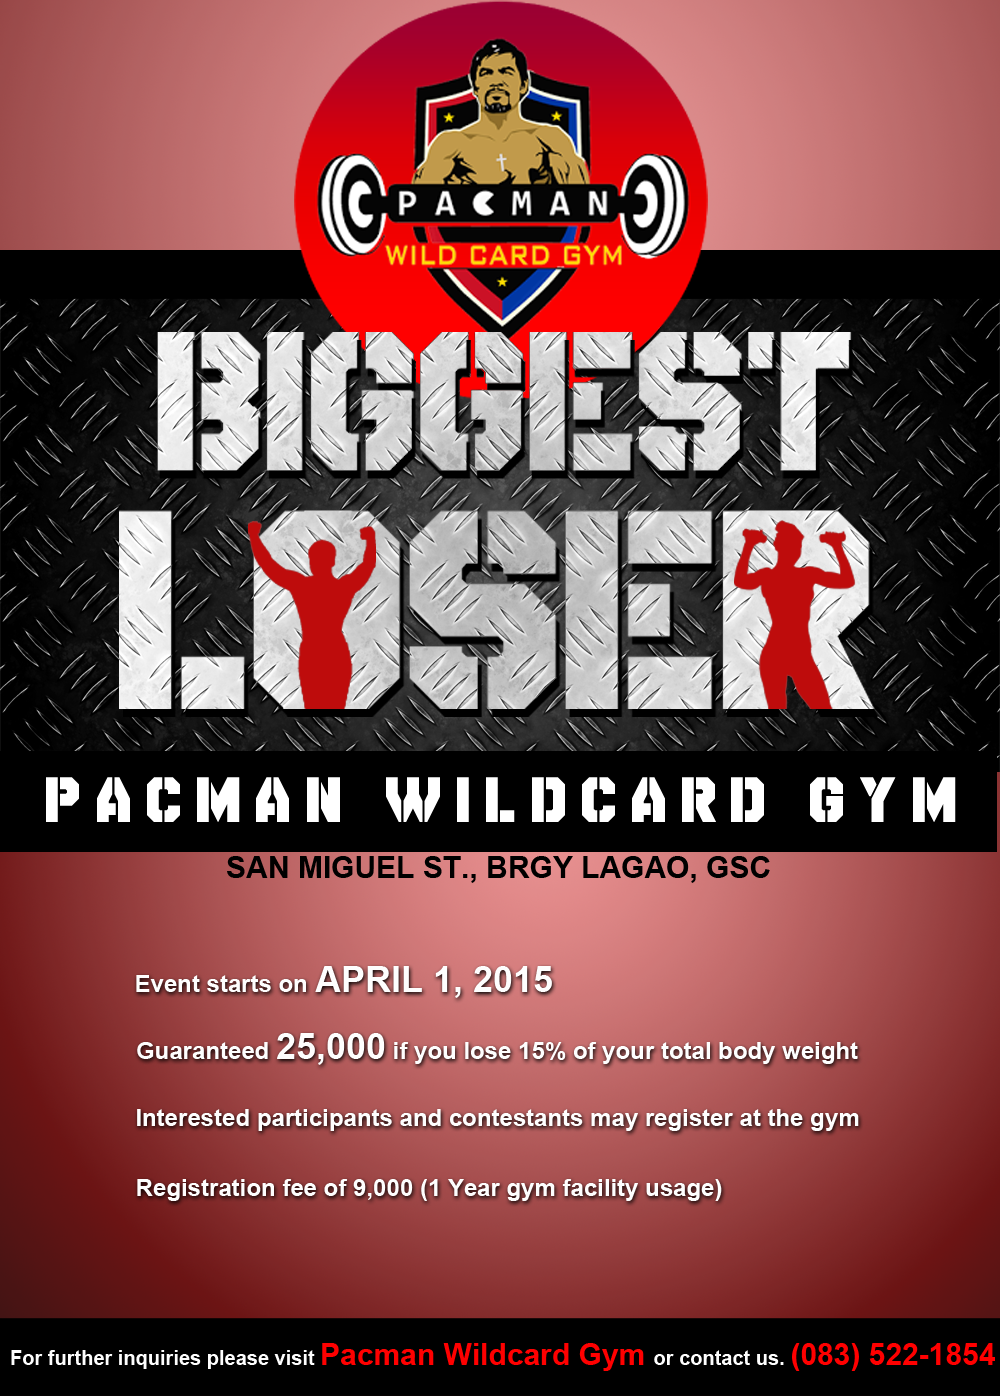 Manny Pacquiao's 2nd Biggest Loser Challenge